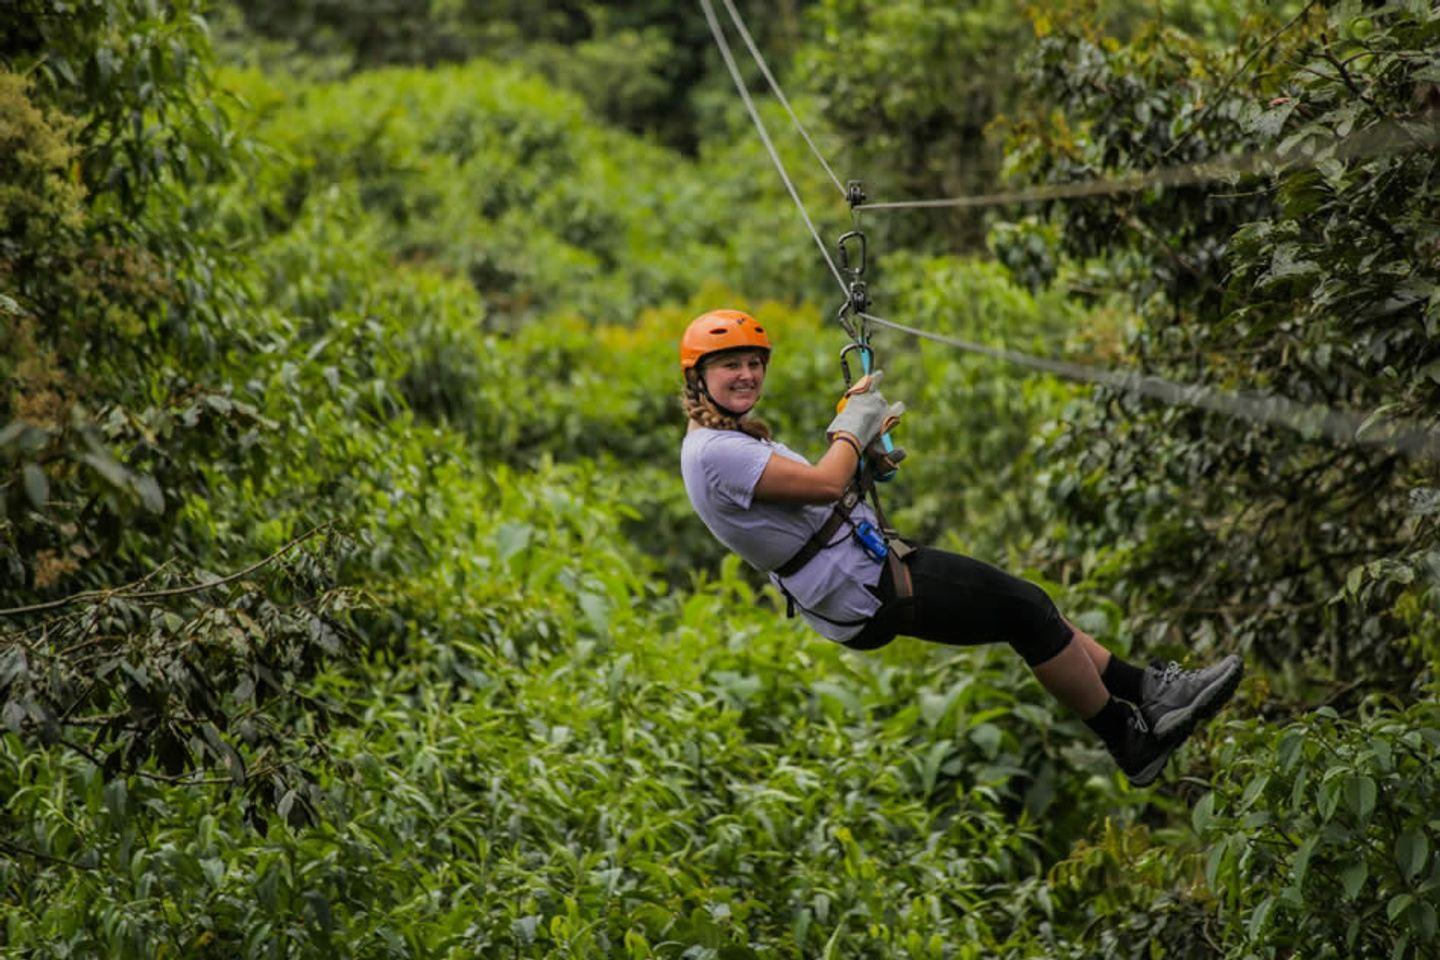 MINDO ADRENALINE AND ADVENTURE IN THE ANDEAN FOREST